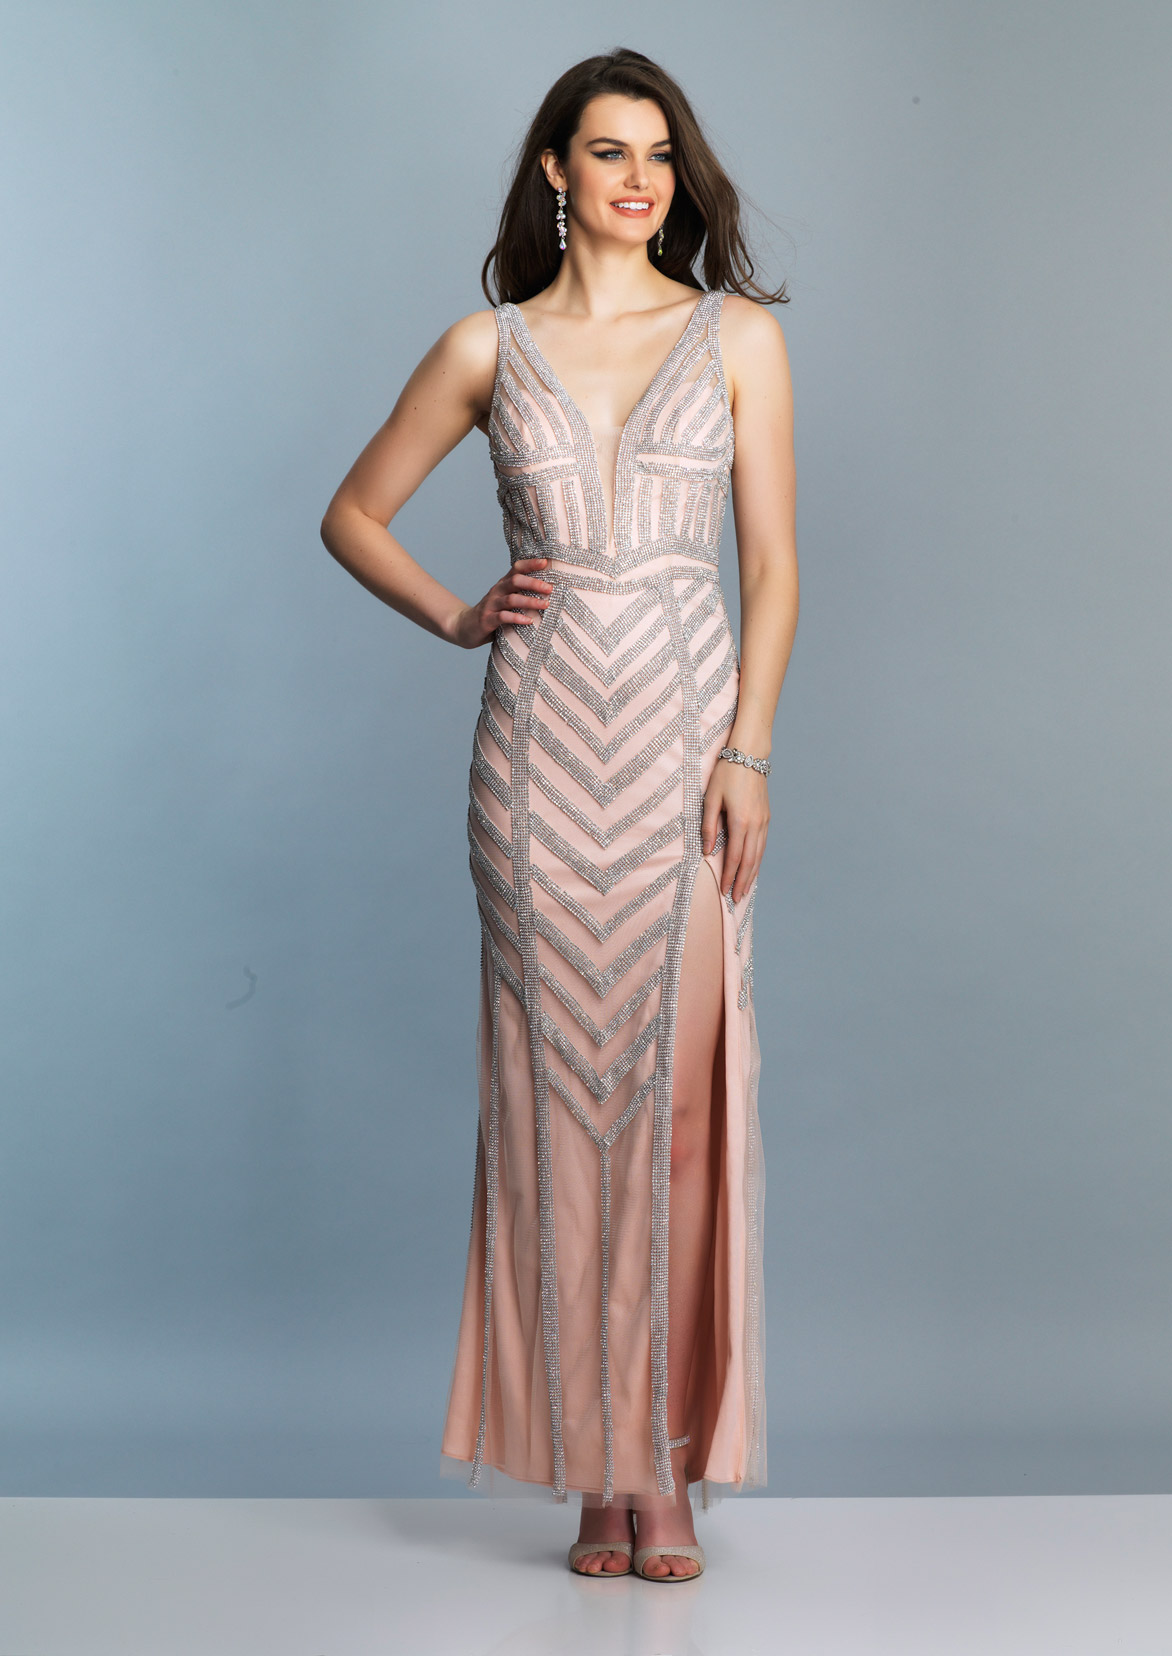 8131001f8e622 Dave and Johnny Prom Dresses $200 & Up